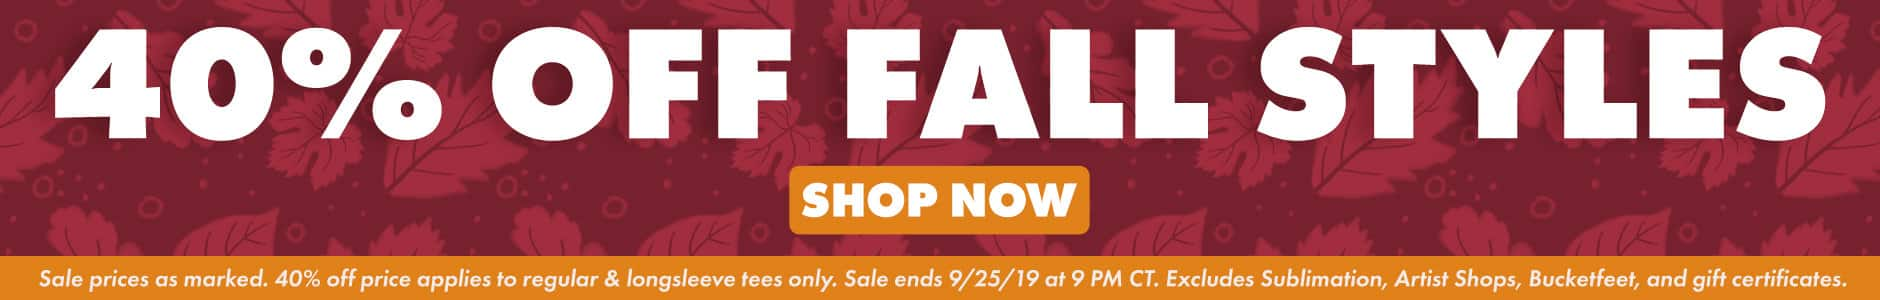 Shop 40% off Fall Styles